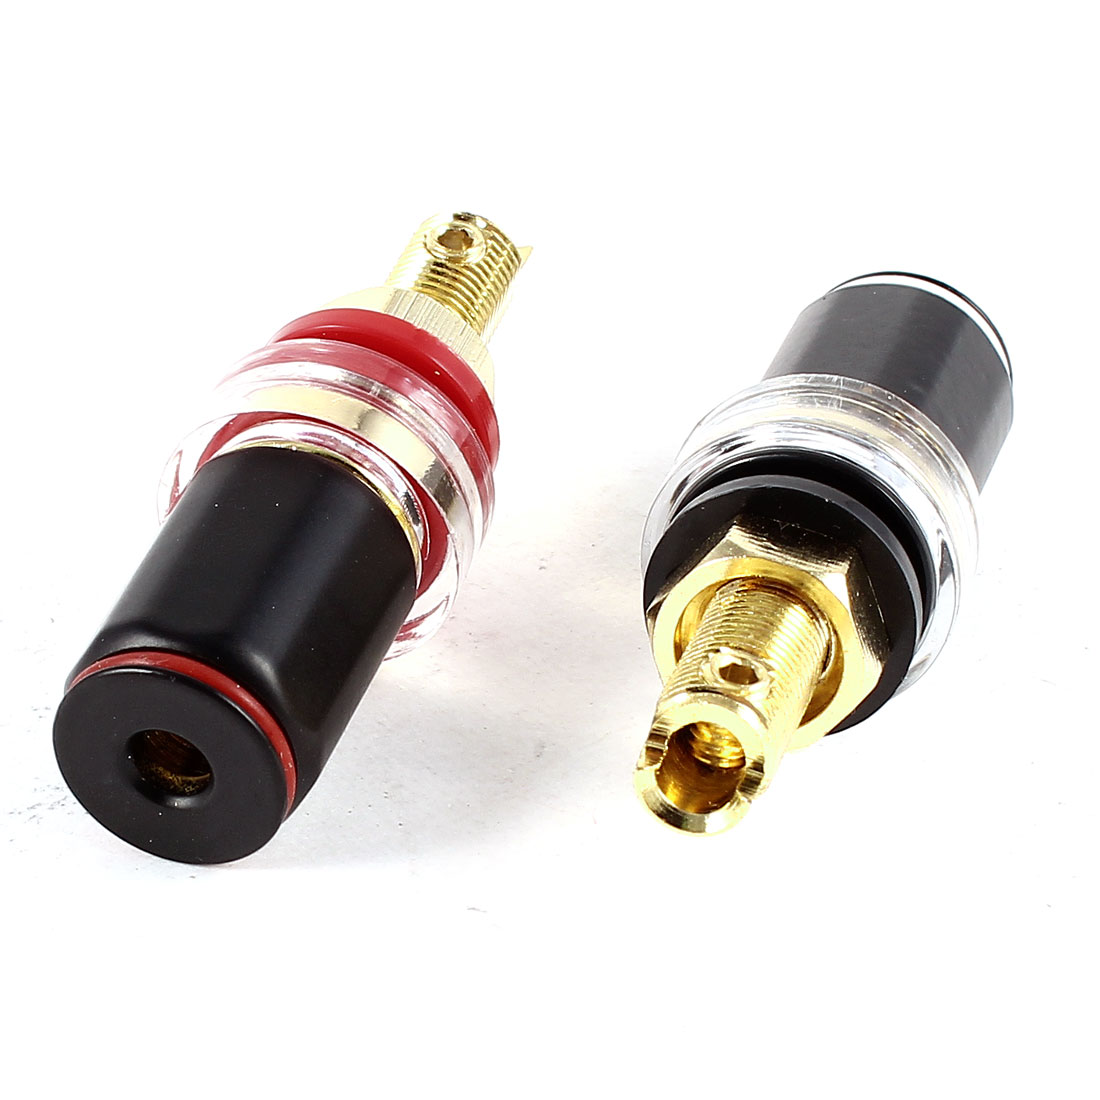 2 Pcs 7.8mm Thread Speaker Cable Terminal Banana Plug Binding Post Replacement